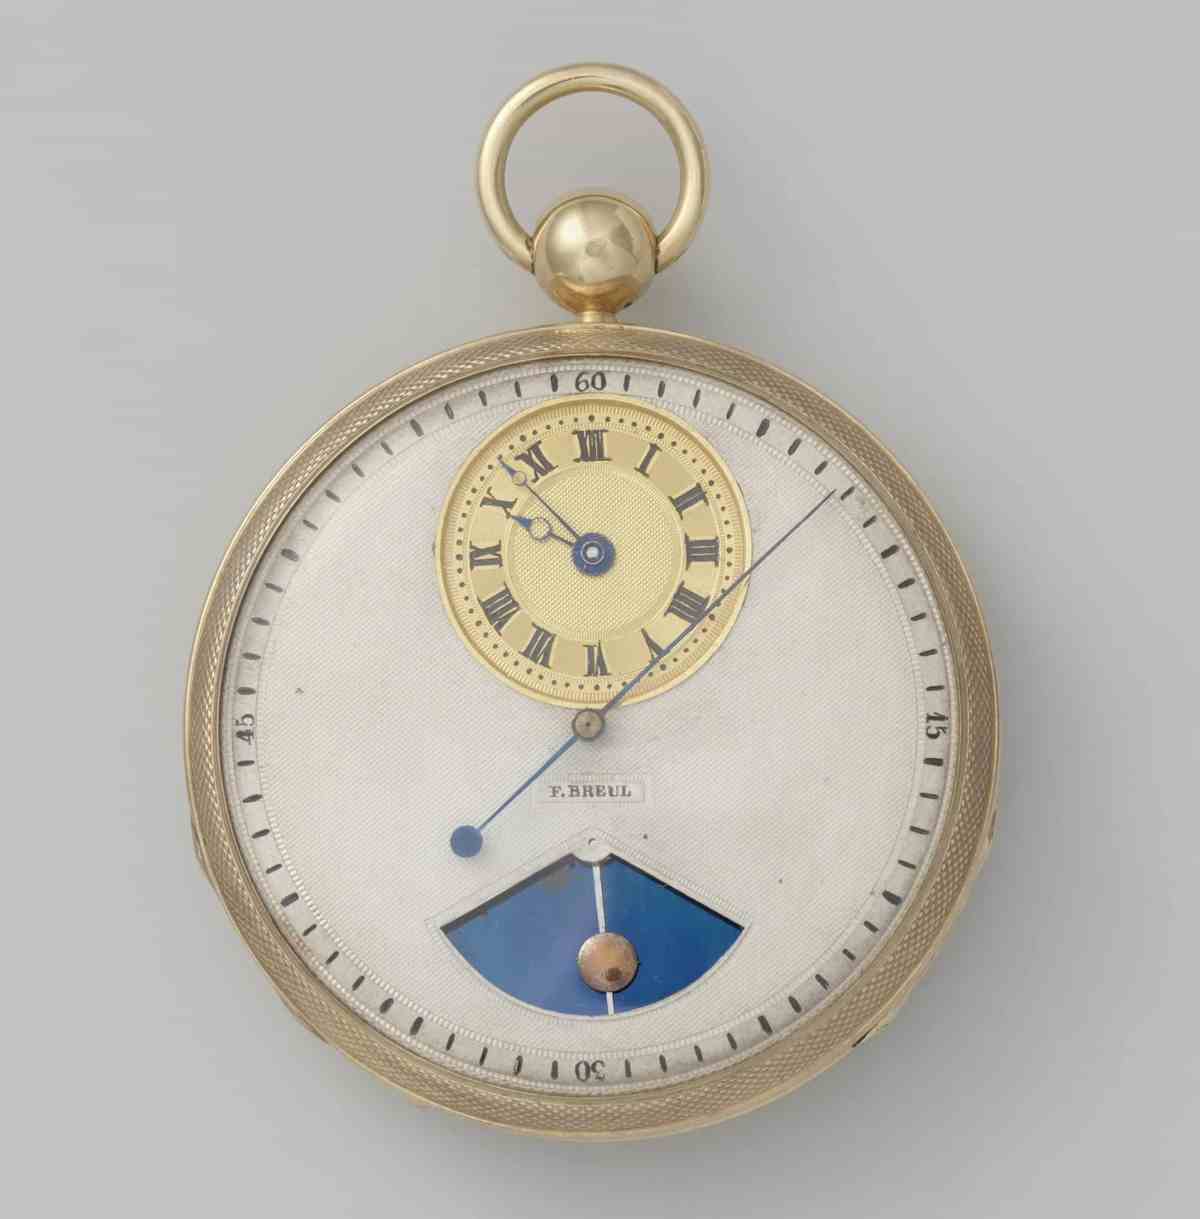 Pocket watch - F. Breul